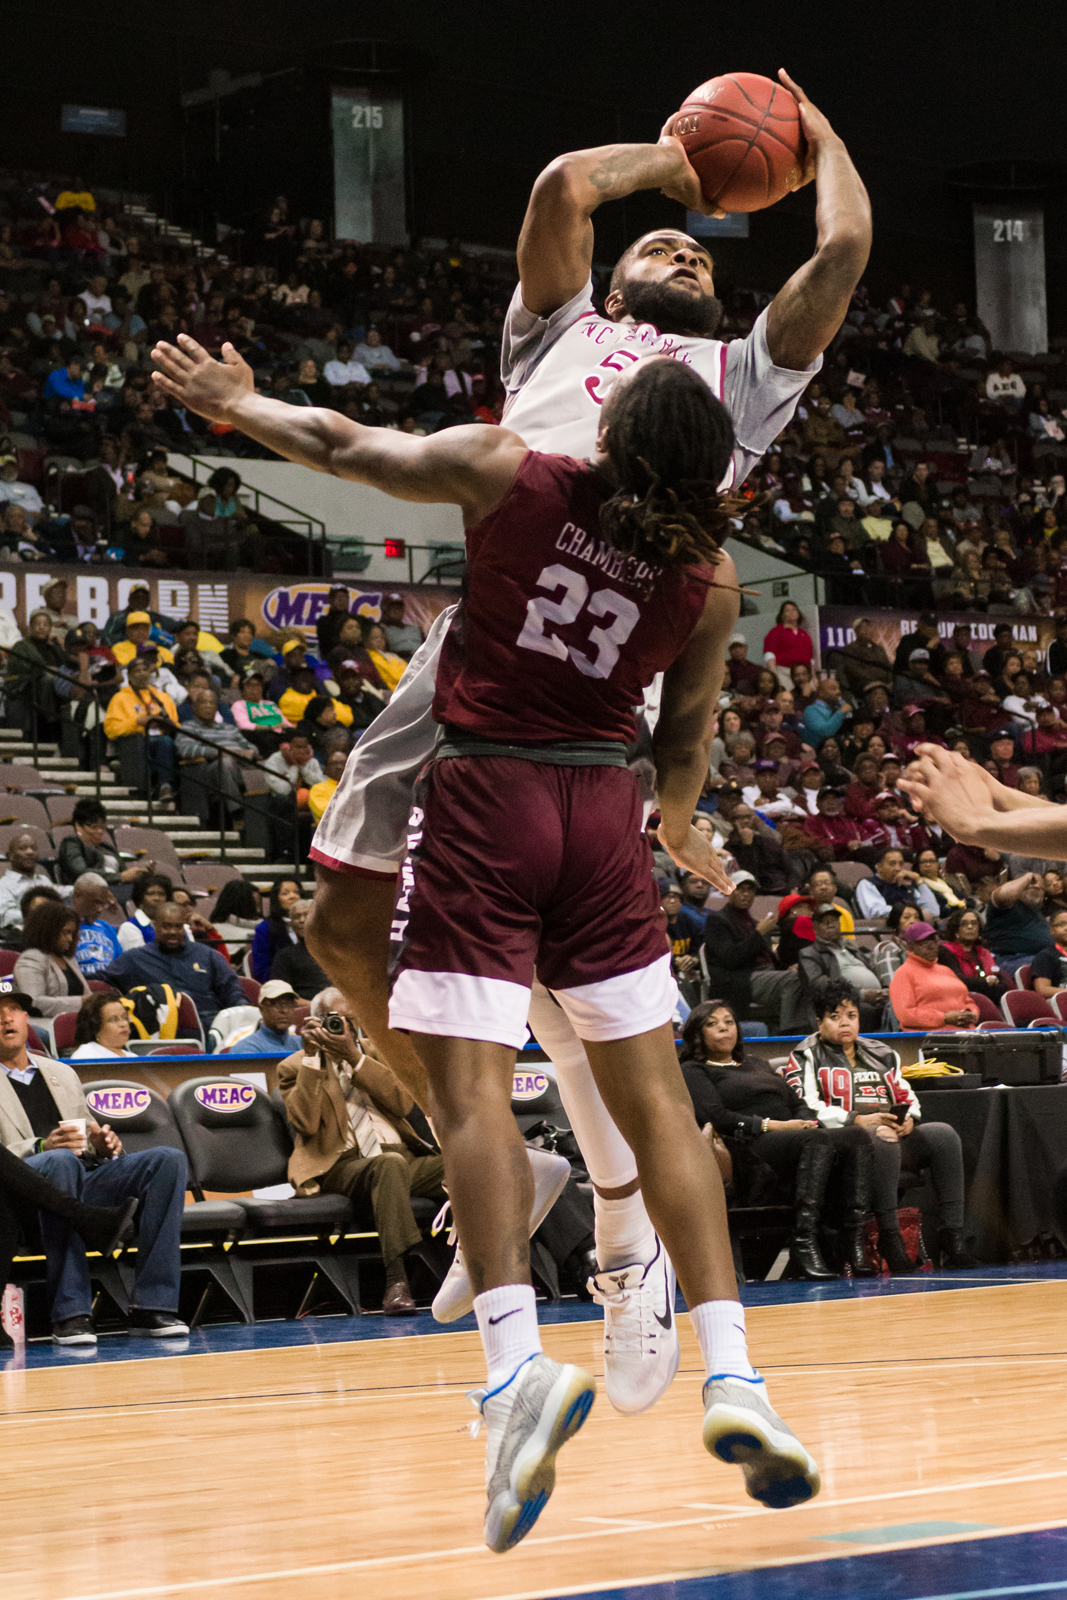 North Carolina Central Eagles forward Del'Vin Dickerson (5) goes up for a shot against Maryland-Eastern Shore Hawks guard Michael Chambers (23) during the 2017 MEAC Tournament held at the Scope Arena in Norfolk, VA. North Carolina Central defeated Maryland Eastern Shore 77-49.